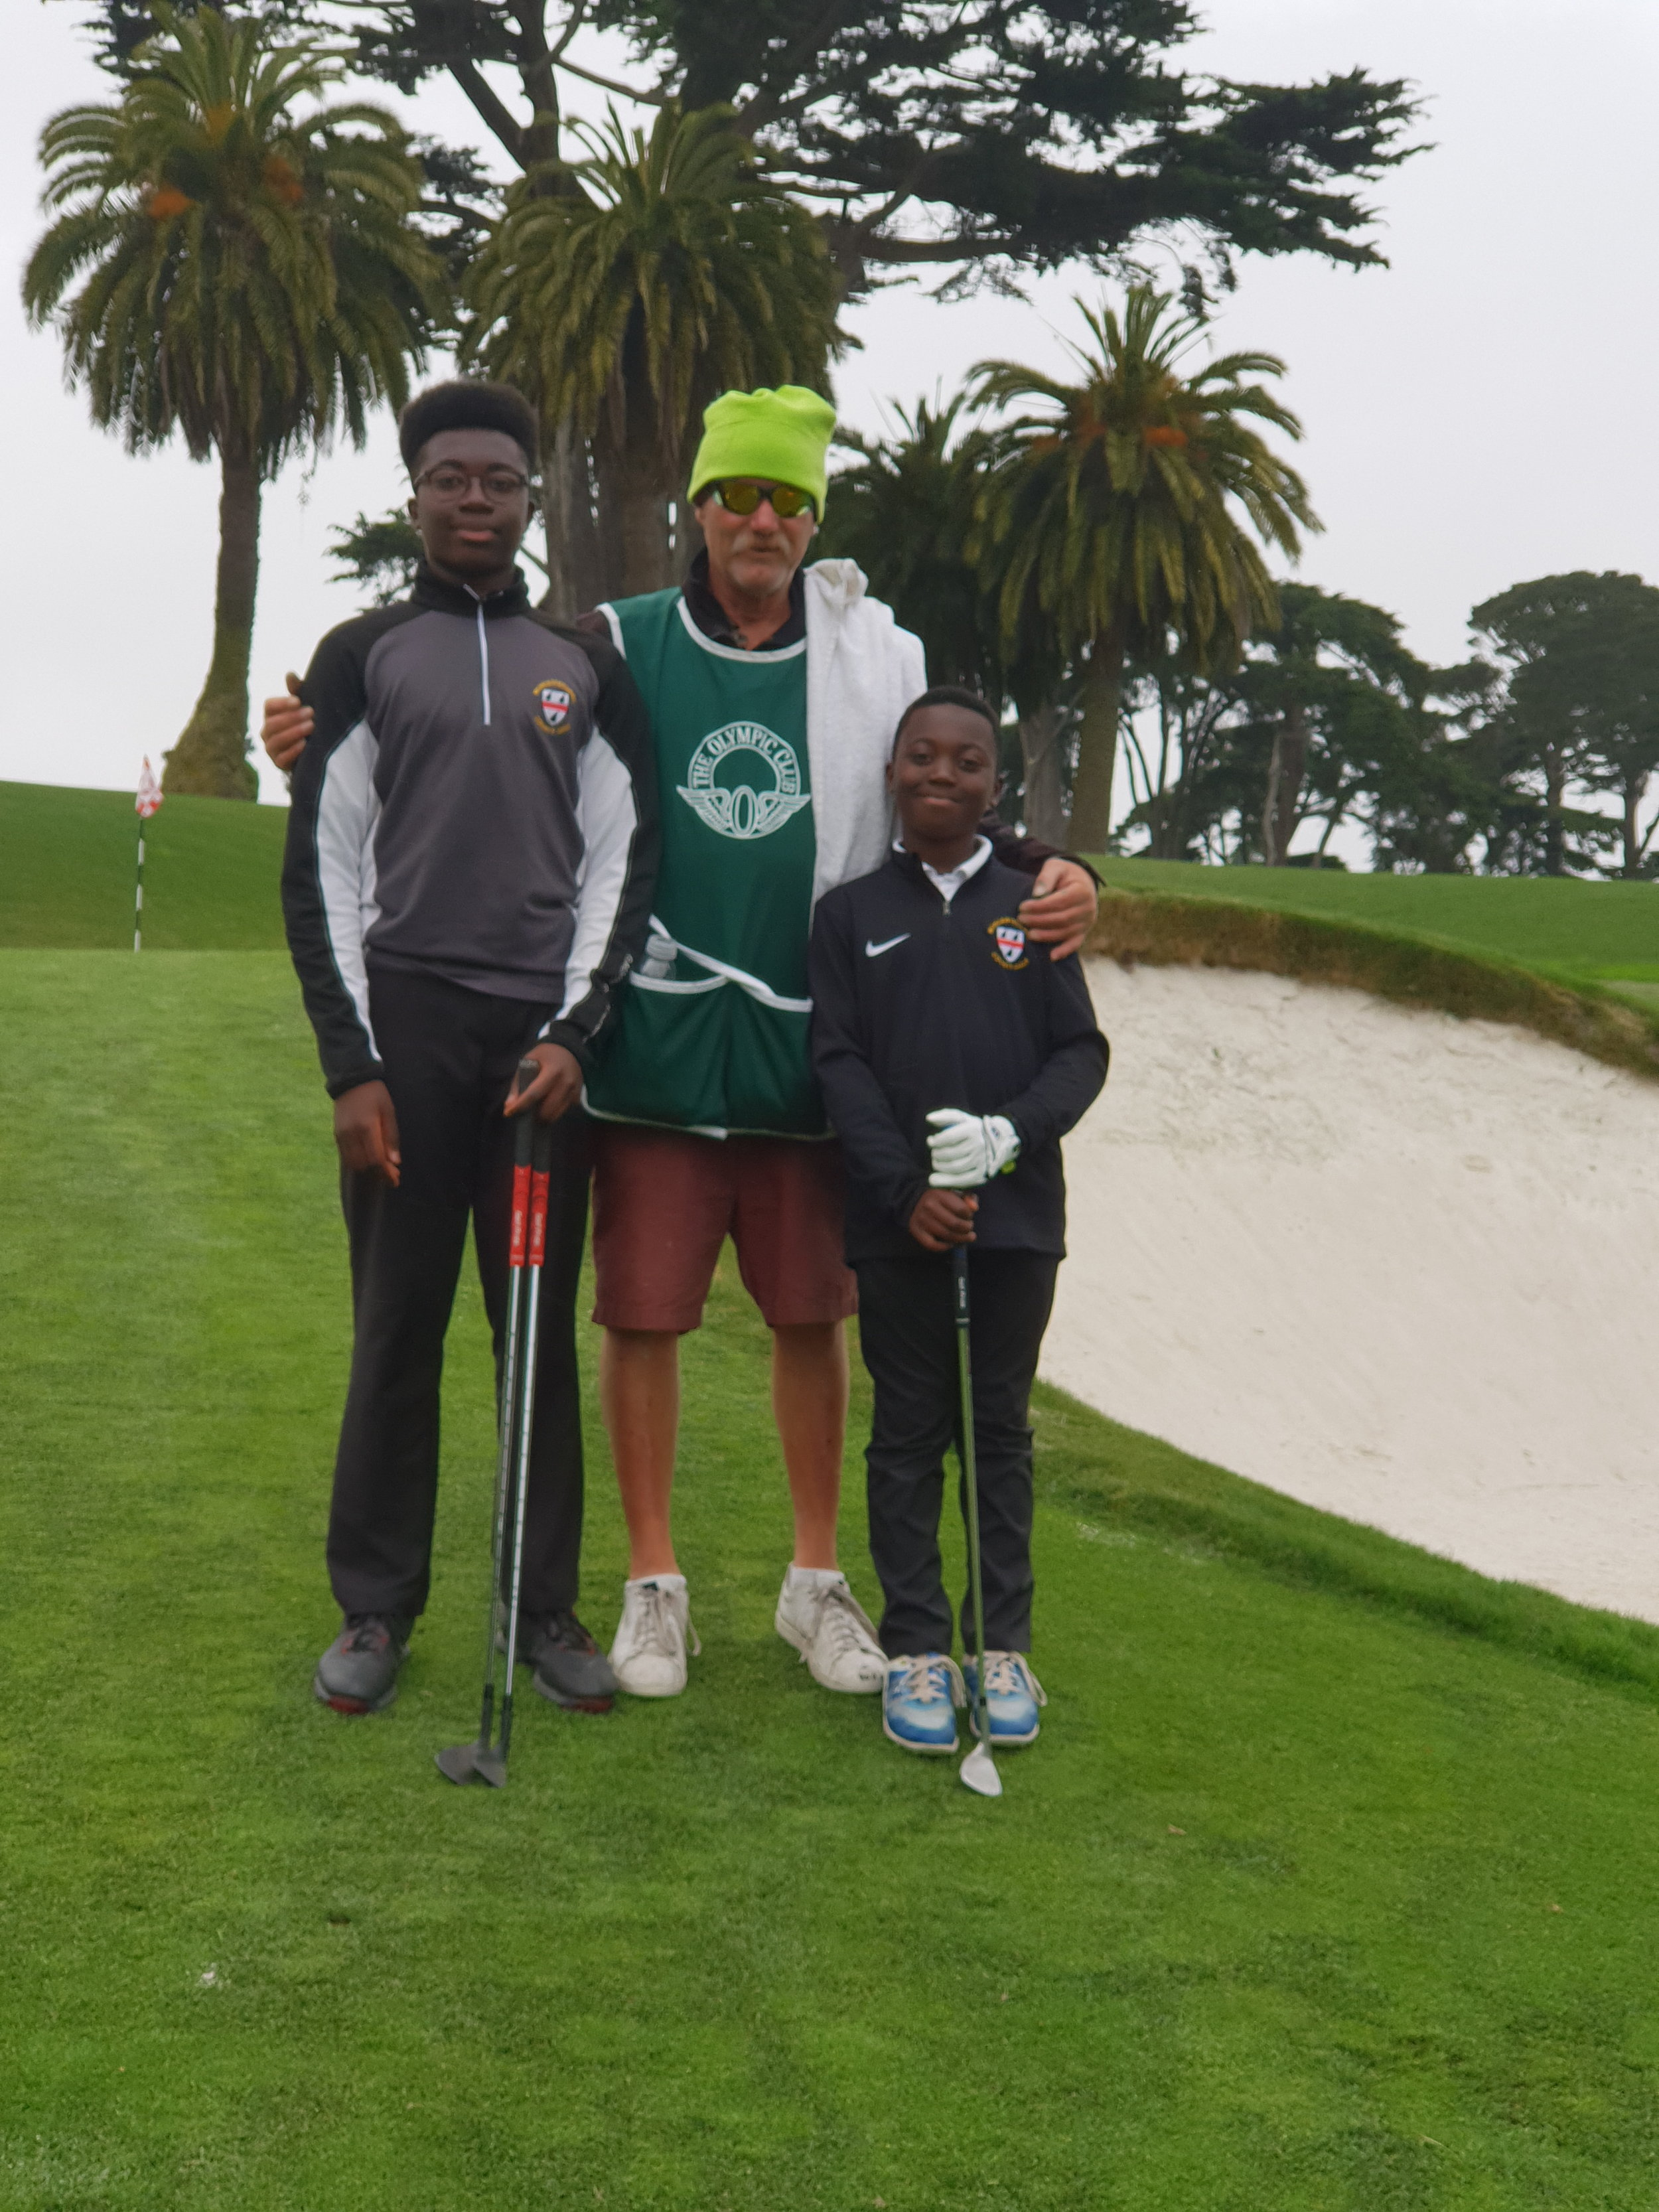 2018 Thank you to caddie Danny for a great round of 18 holes at 'The Olympic Club' Lake Course